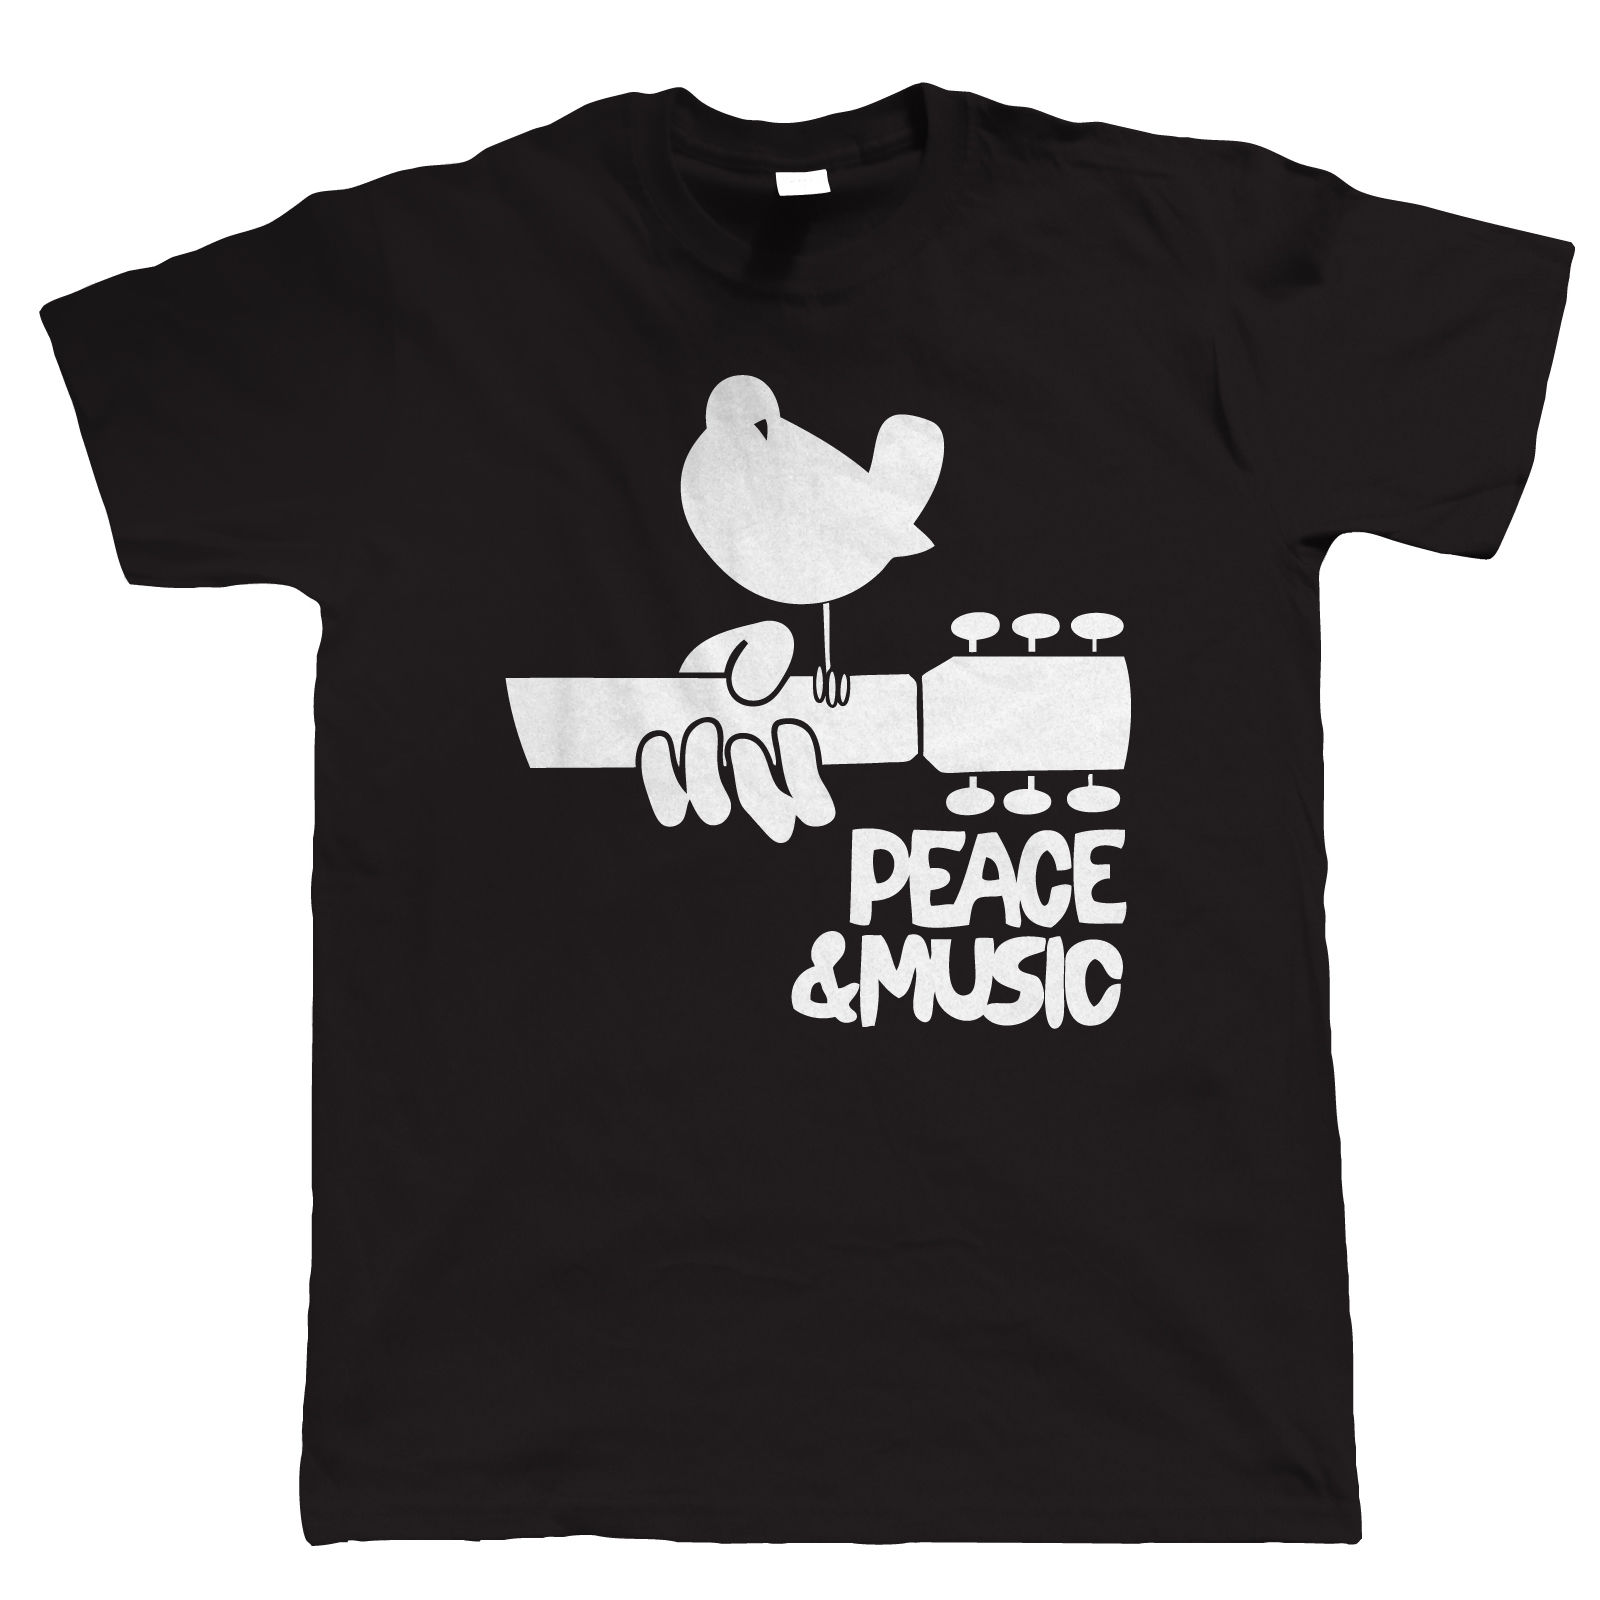 Woodstock Music Festival Mens Guitar T Shirt, Gift for Dad Him New Shirts Funny Tops Tee Unisex free shipping